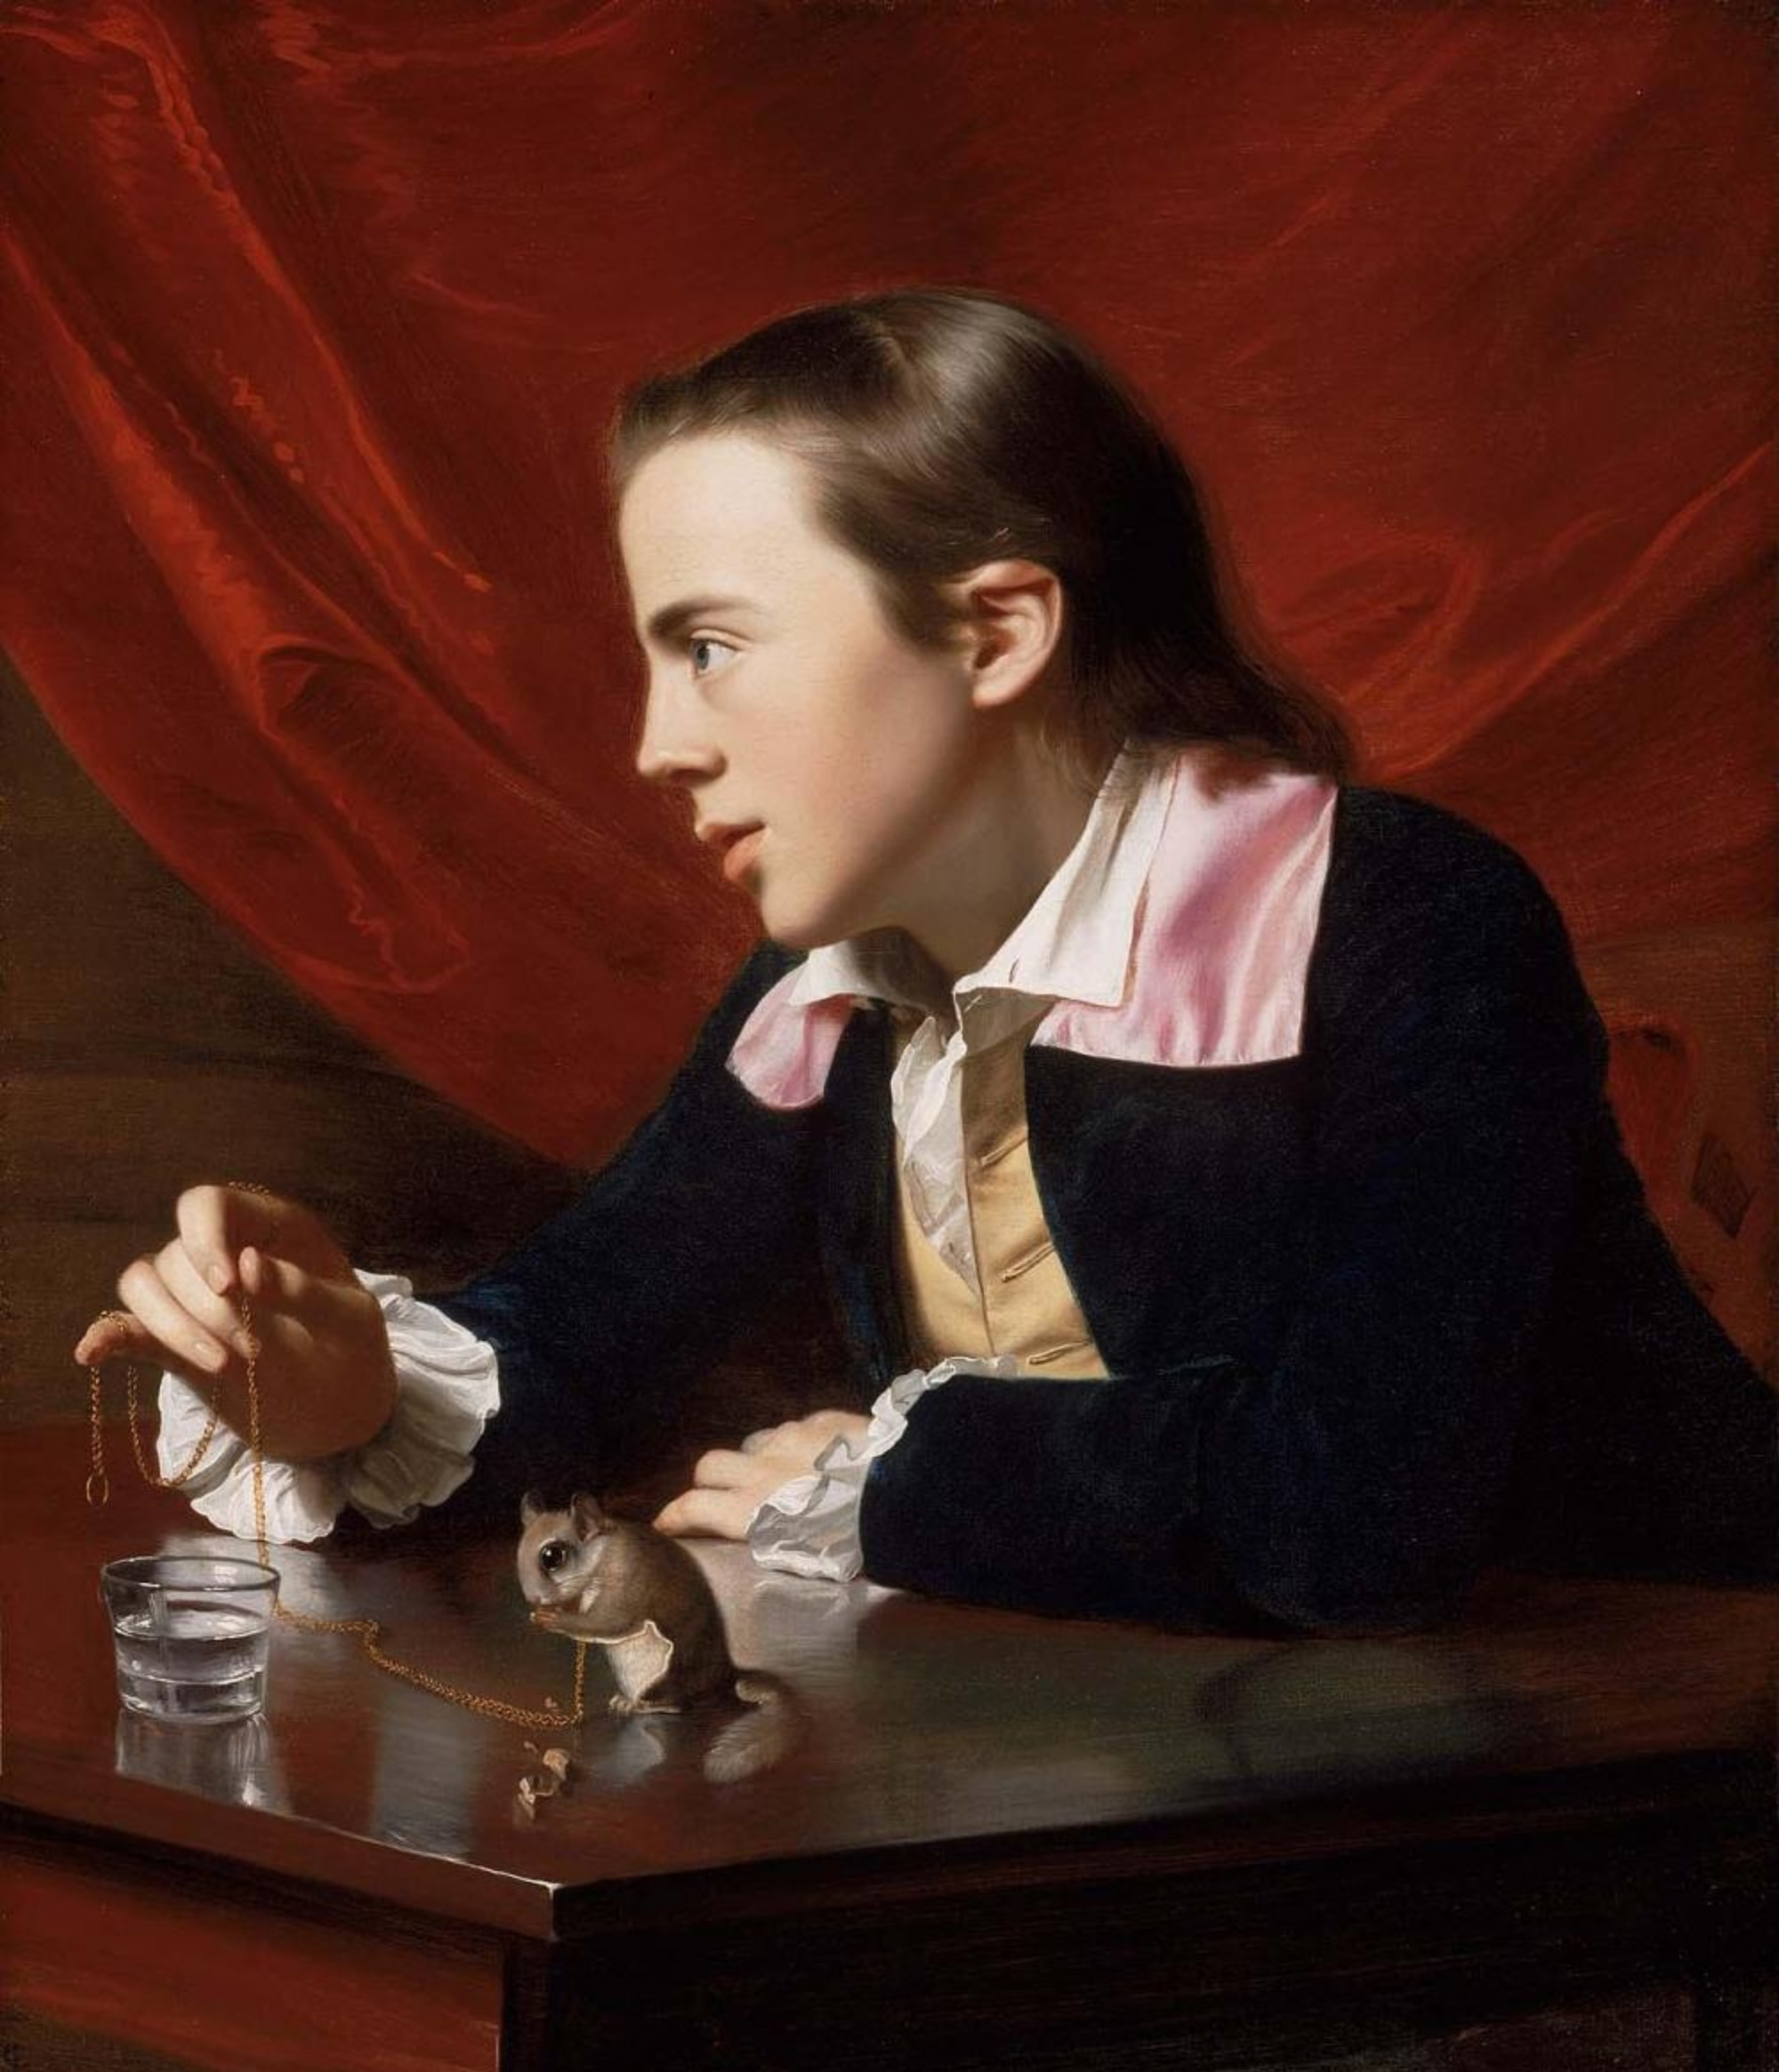 John Singleton Copley painted this portrait of his half brother, Henry Pelham, who later created the most important image of the Boston Massacre.